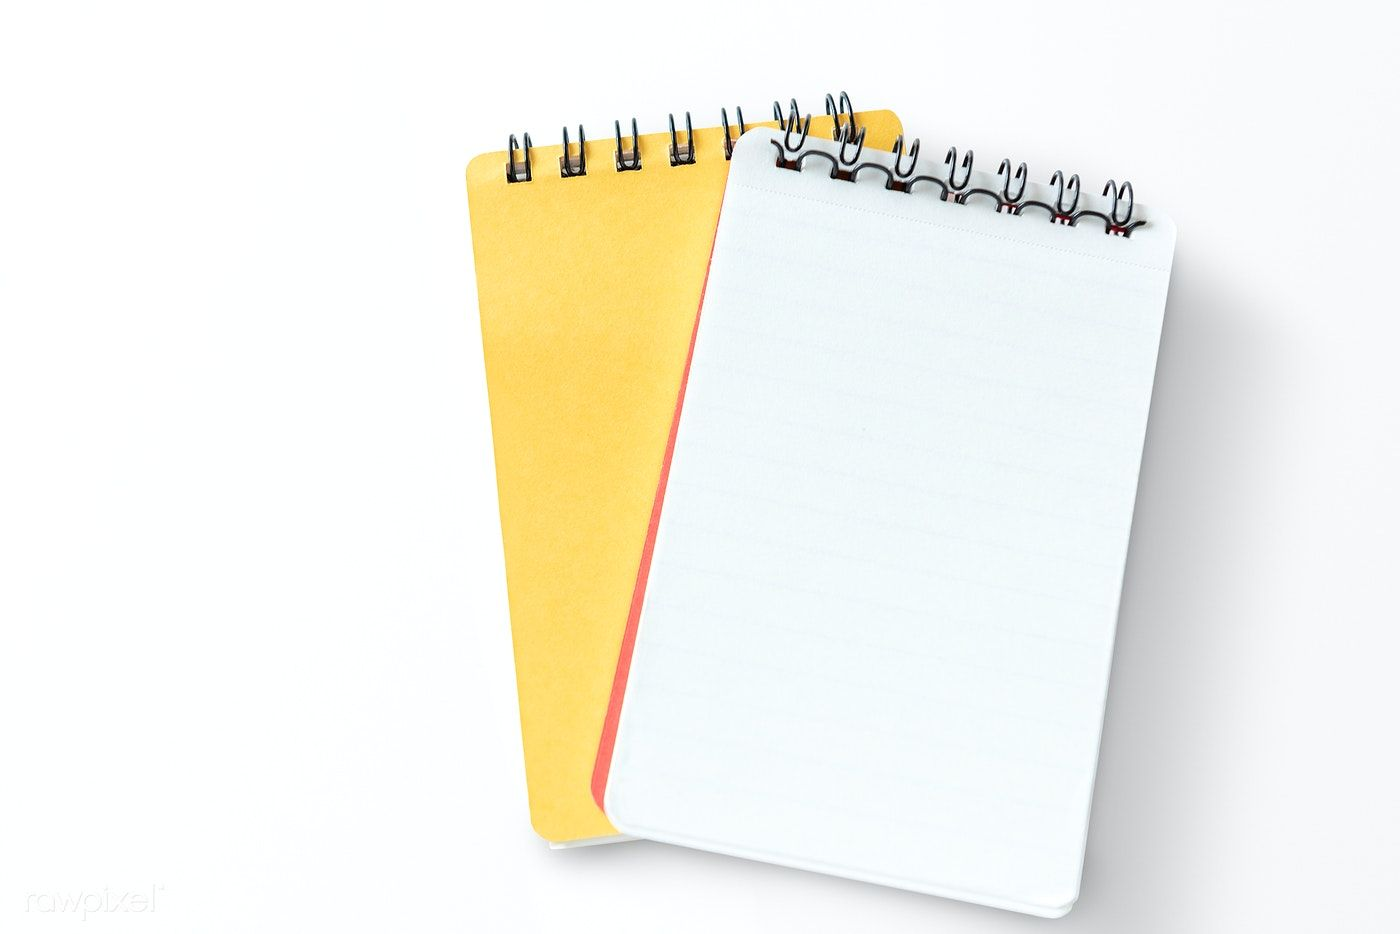 Two yellow lined notebooks mockup free image by rawpixel